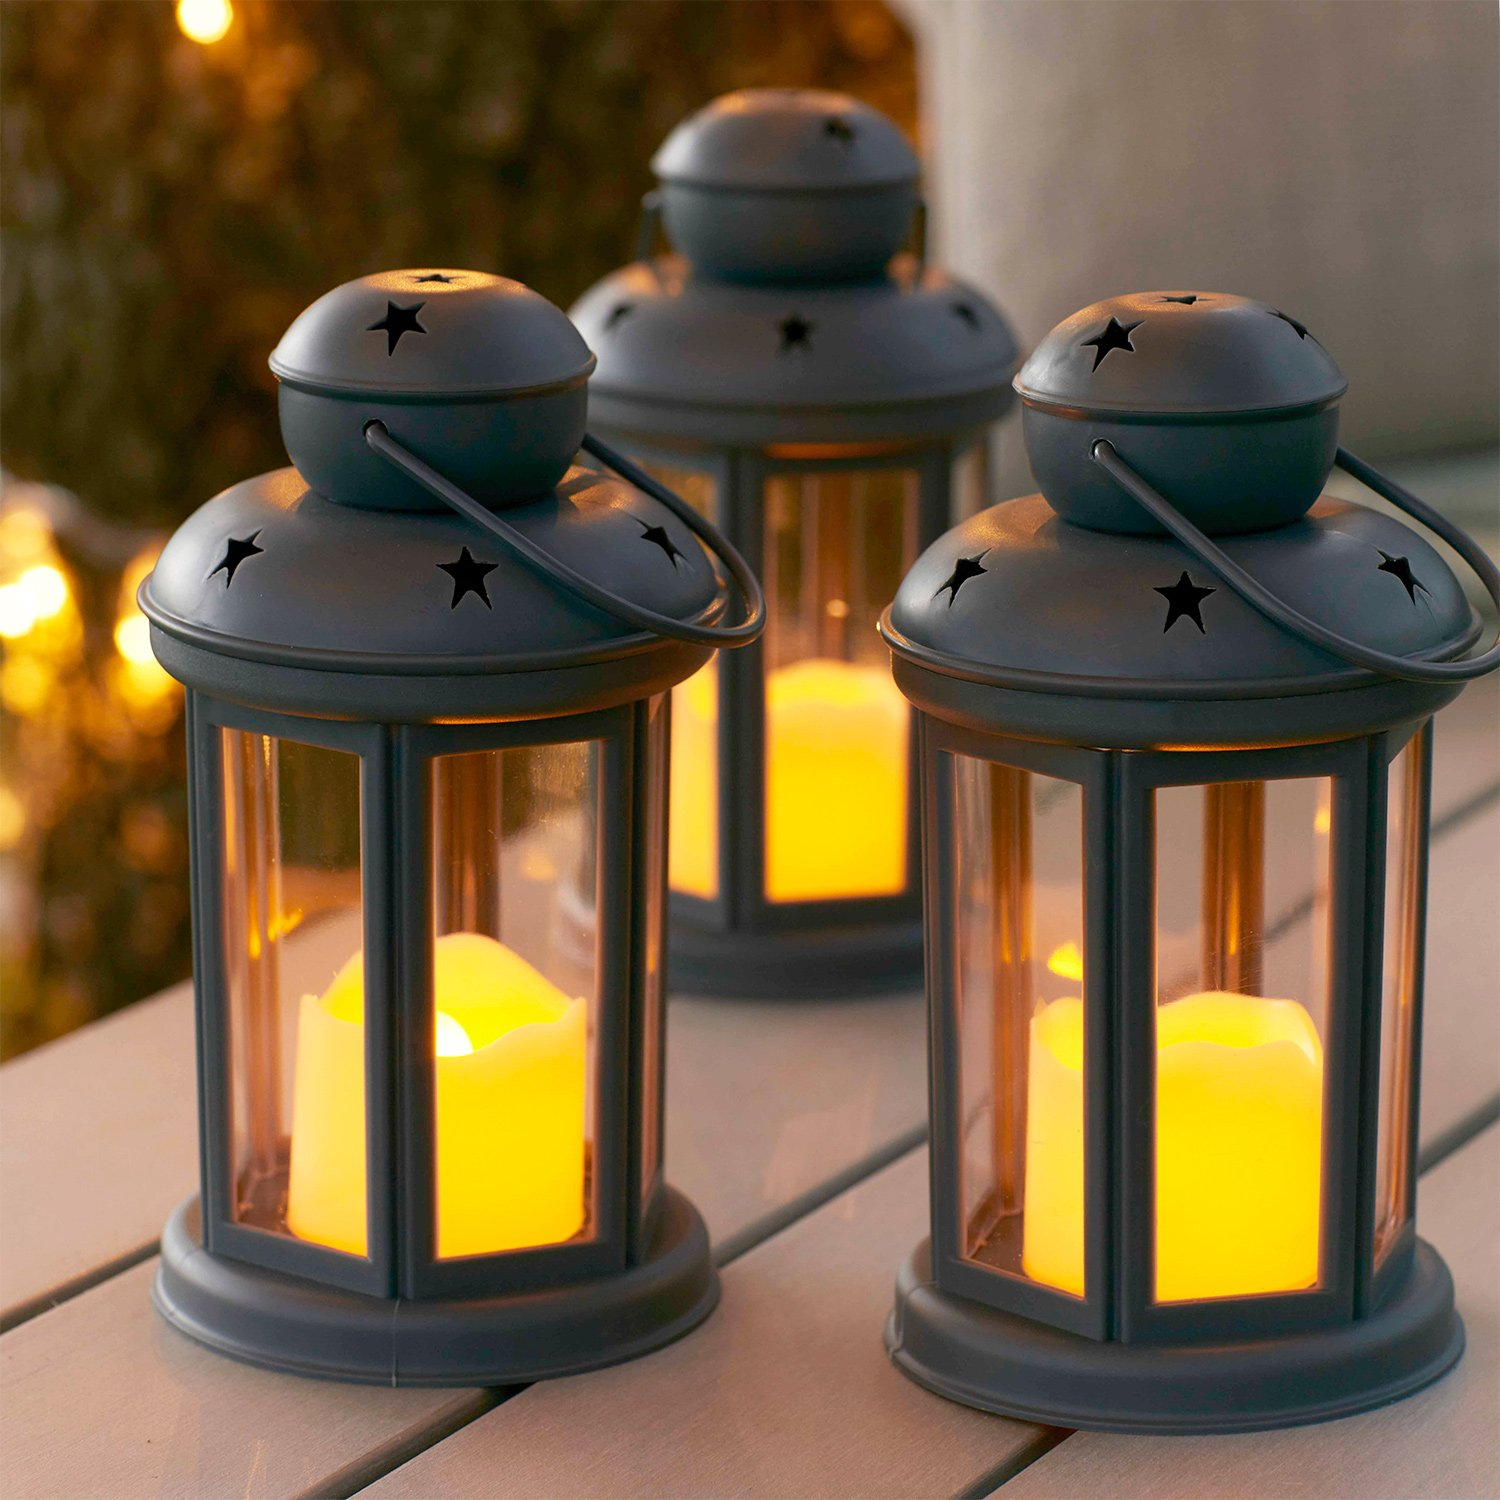 Lights4fun, Inc. Set of 3 Grey Battery Operated LED Flameless Candle Lanterns for Indoor Outdoor Use